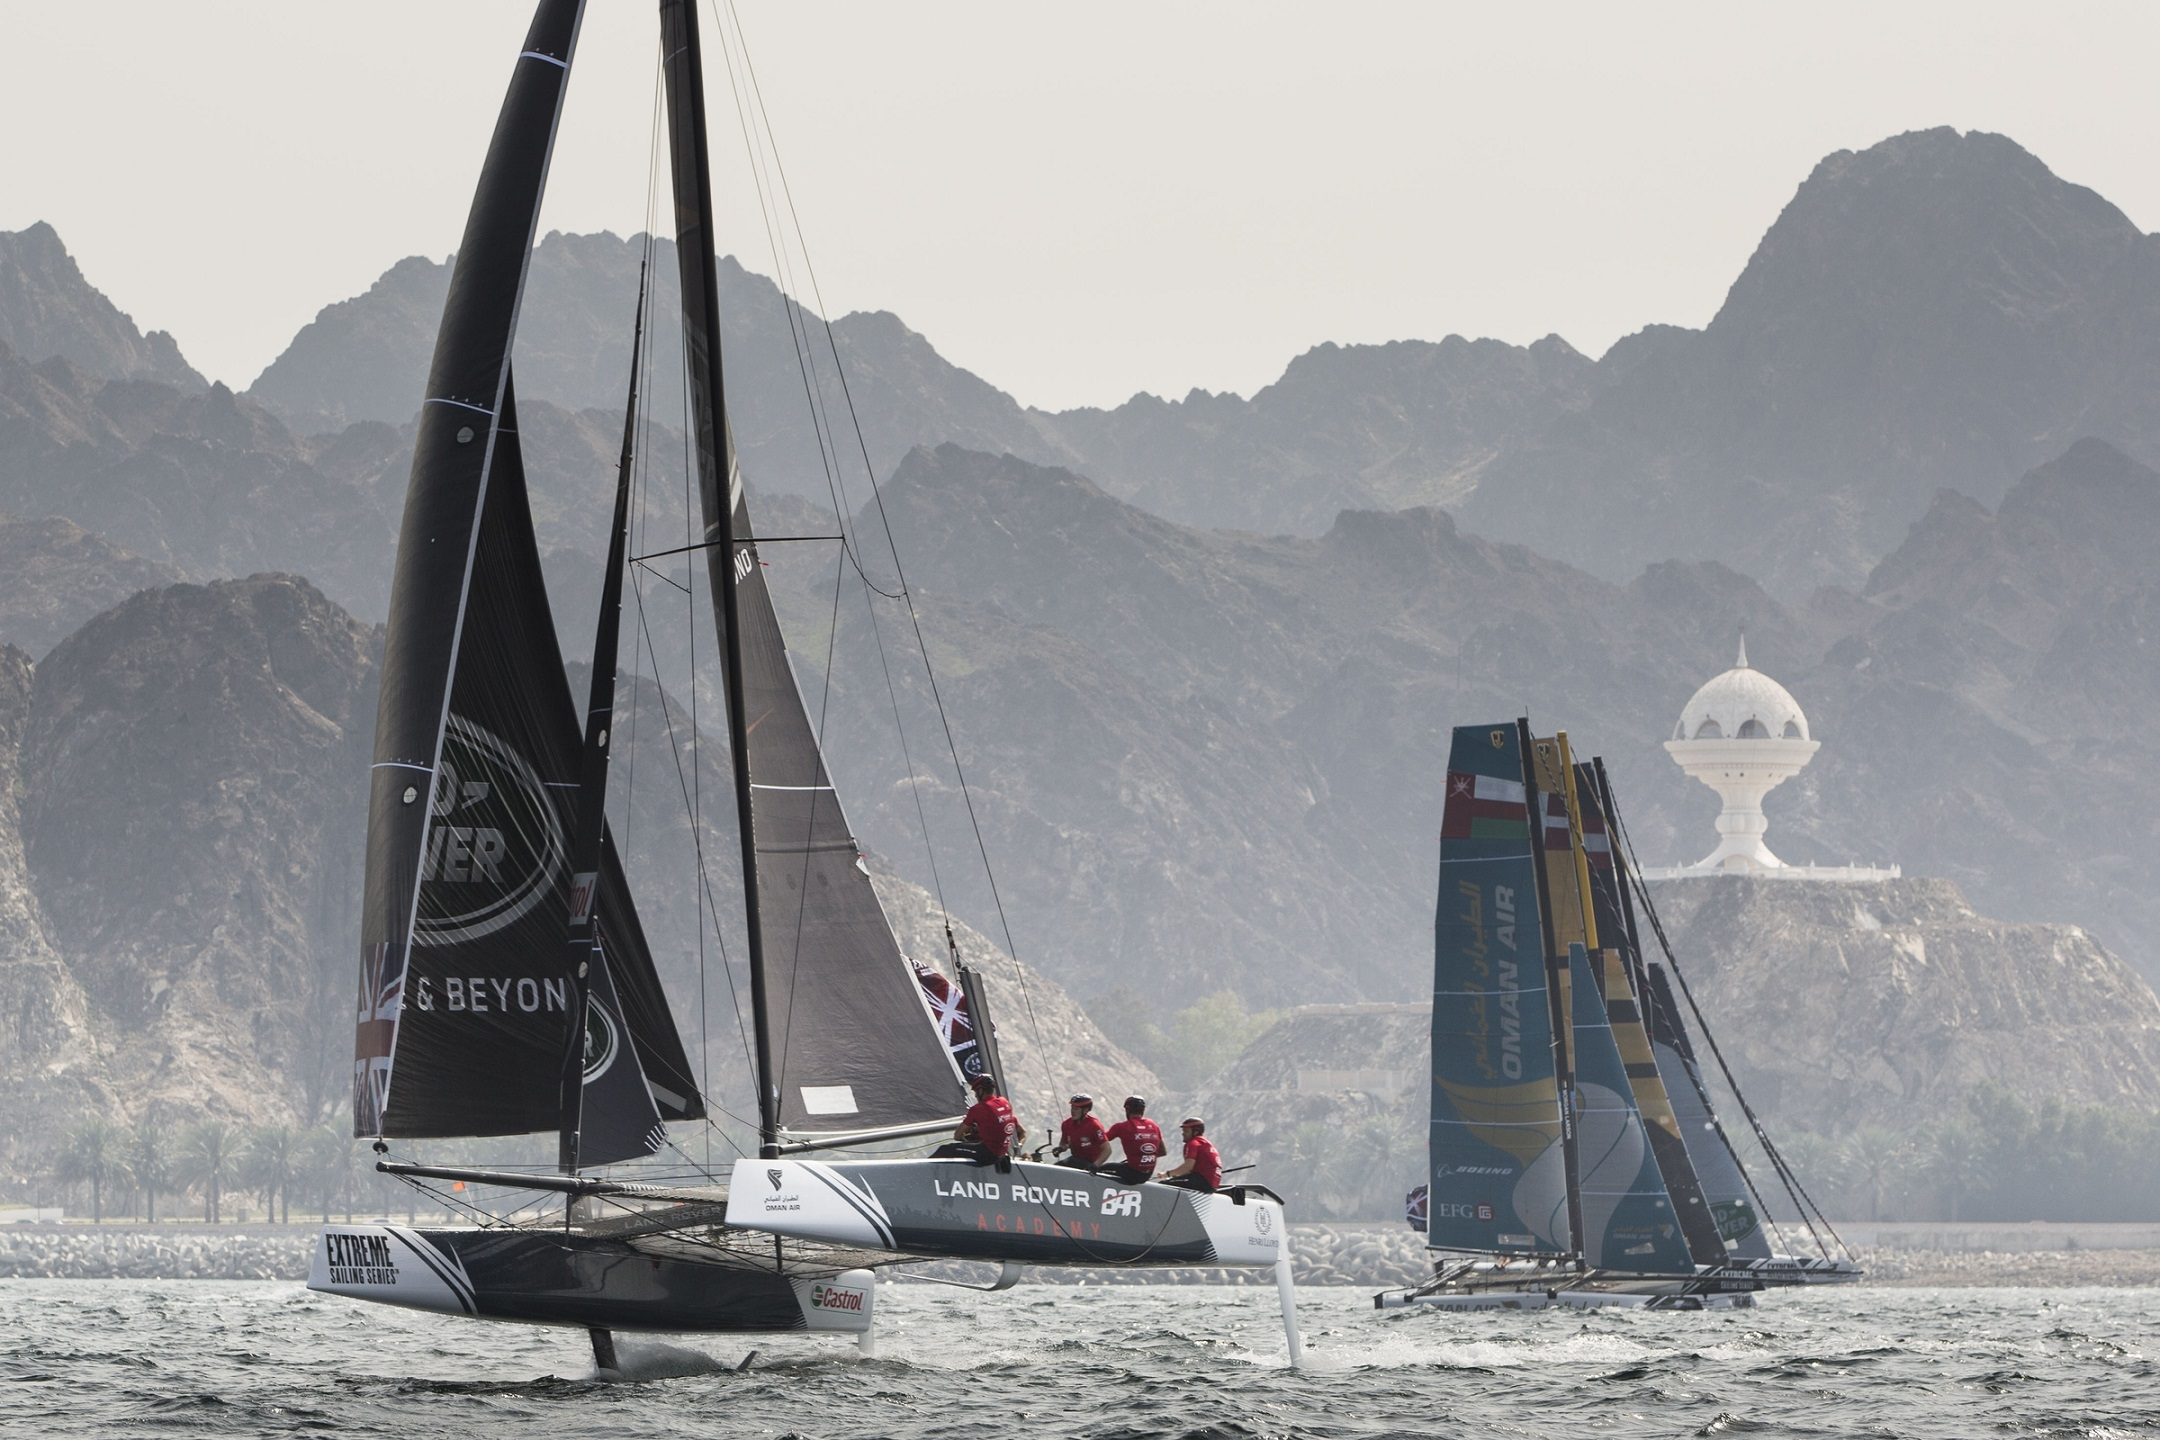 Stunning display from Oman Air in Muscat to open 2016 Extreme Sailing Series